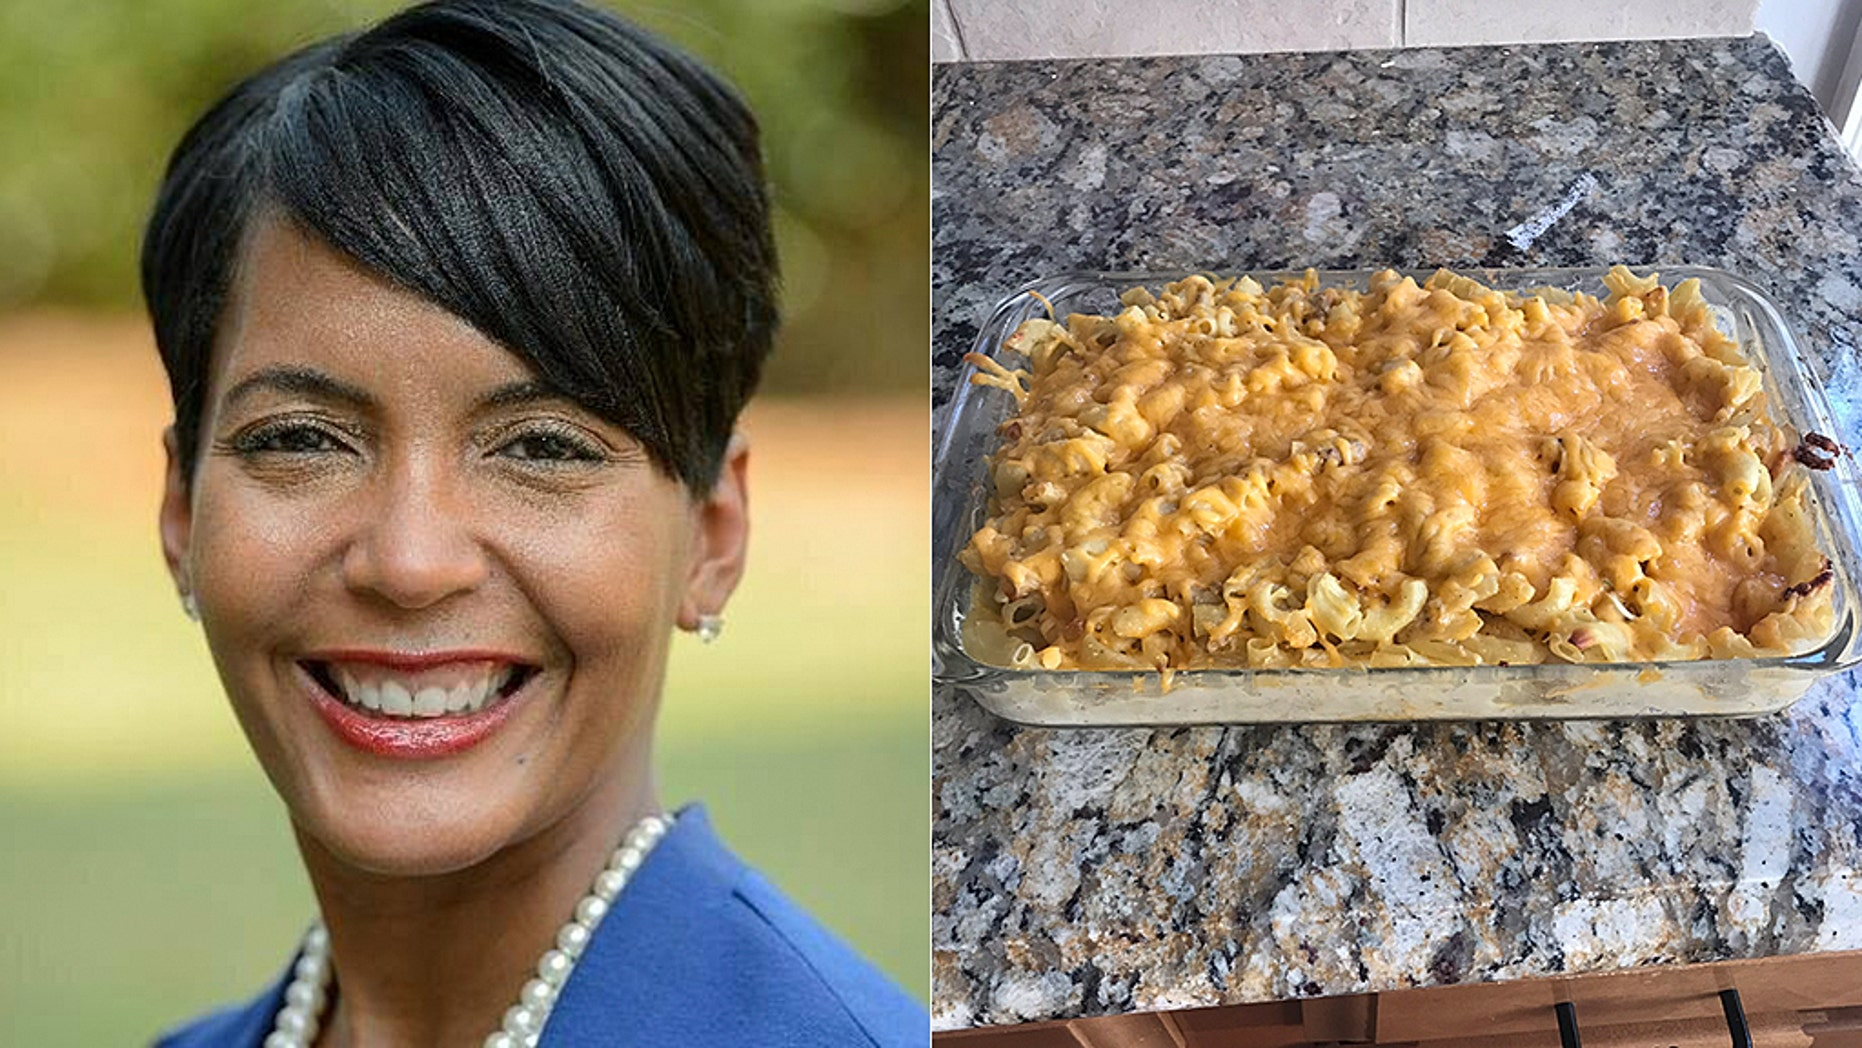 The mayor of Atlanta, Keisha Lance Bottoms, caused a Twitter riot when she tweeted a photo of her homemade mac and cheese.